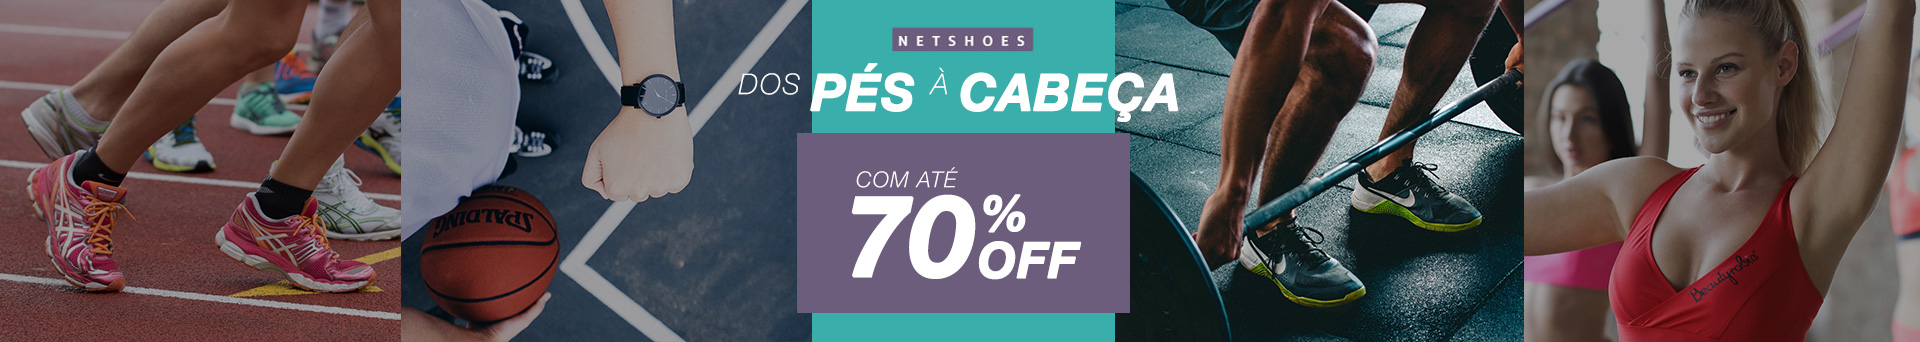 Netshoes banner home